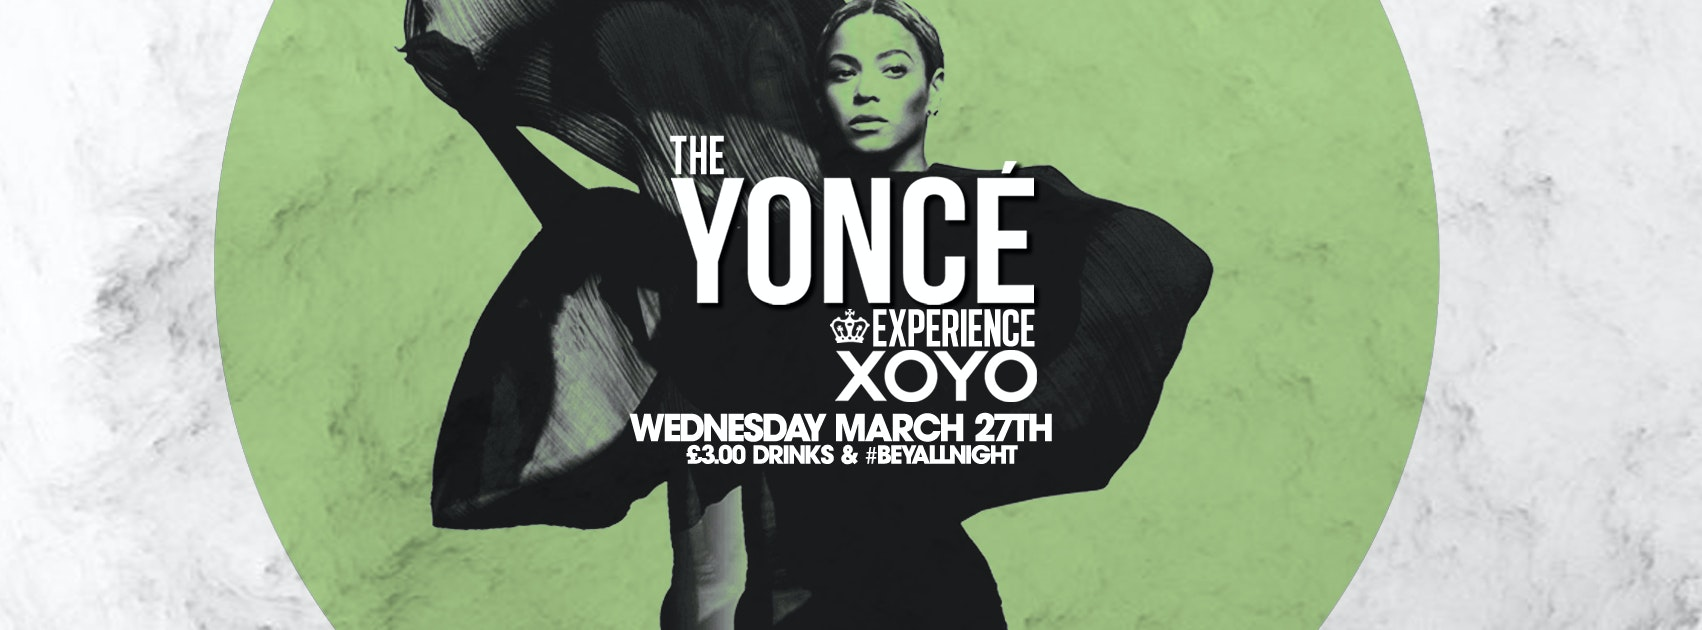 The Yoncé Experience at XOYO | March 27th 2019